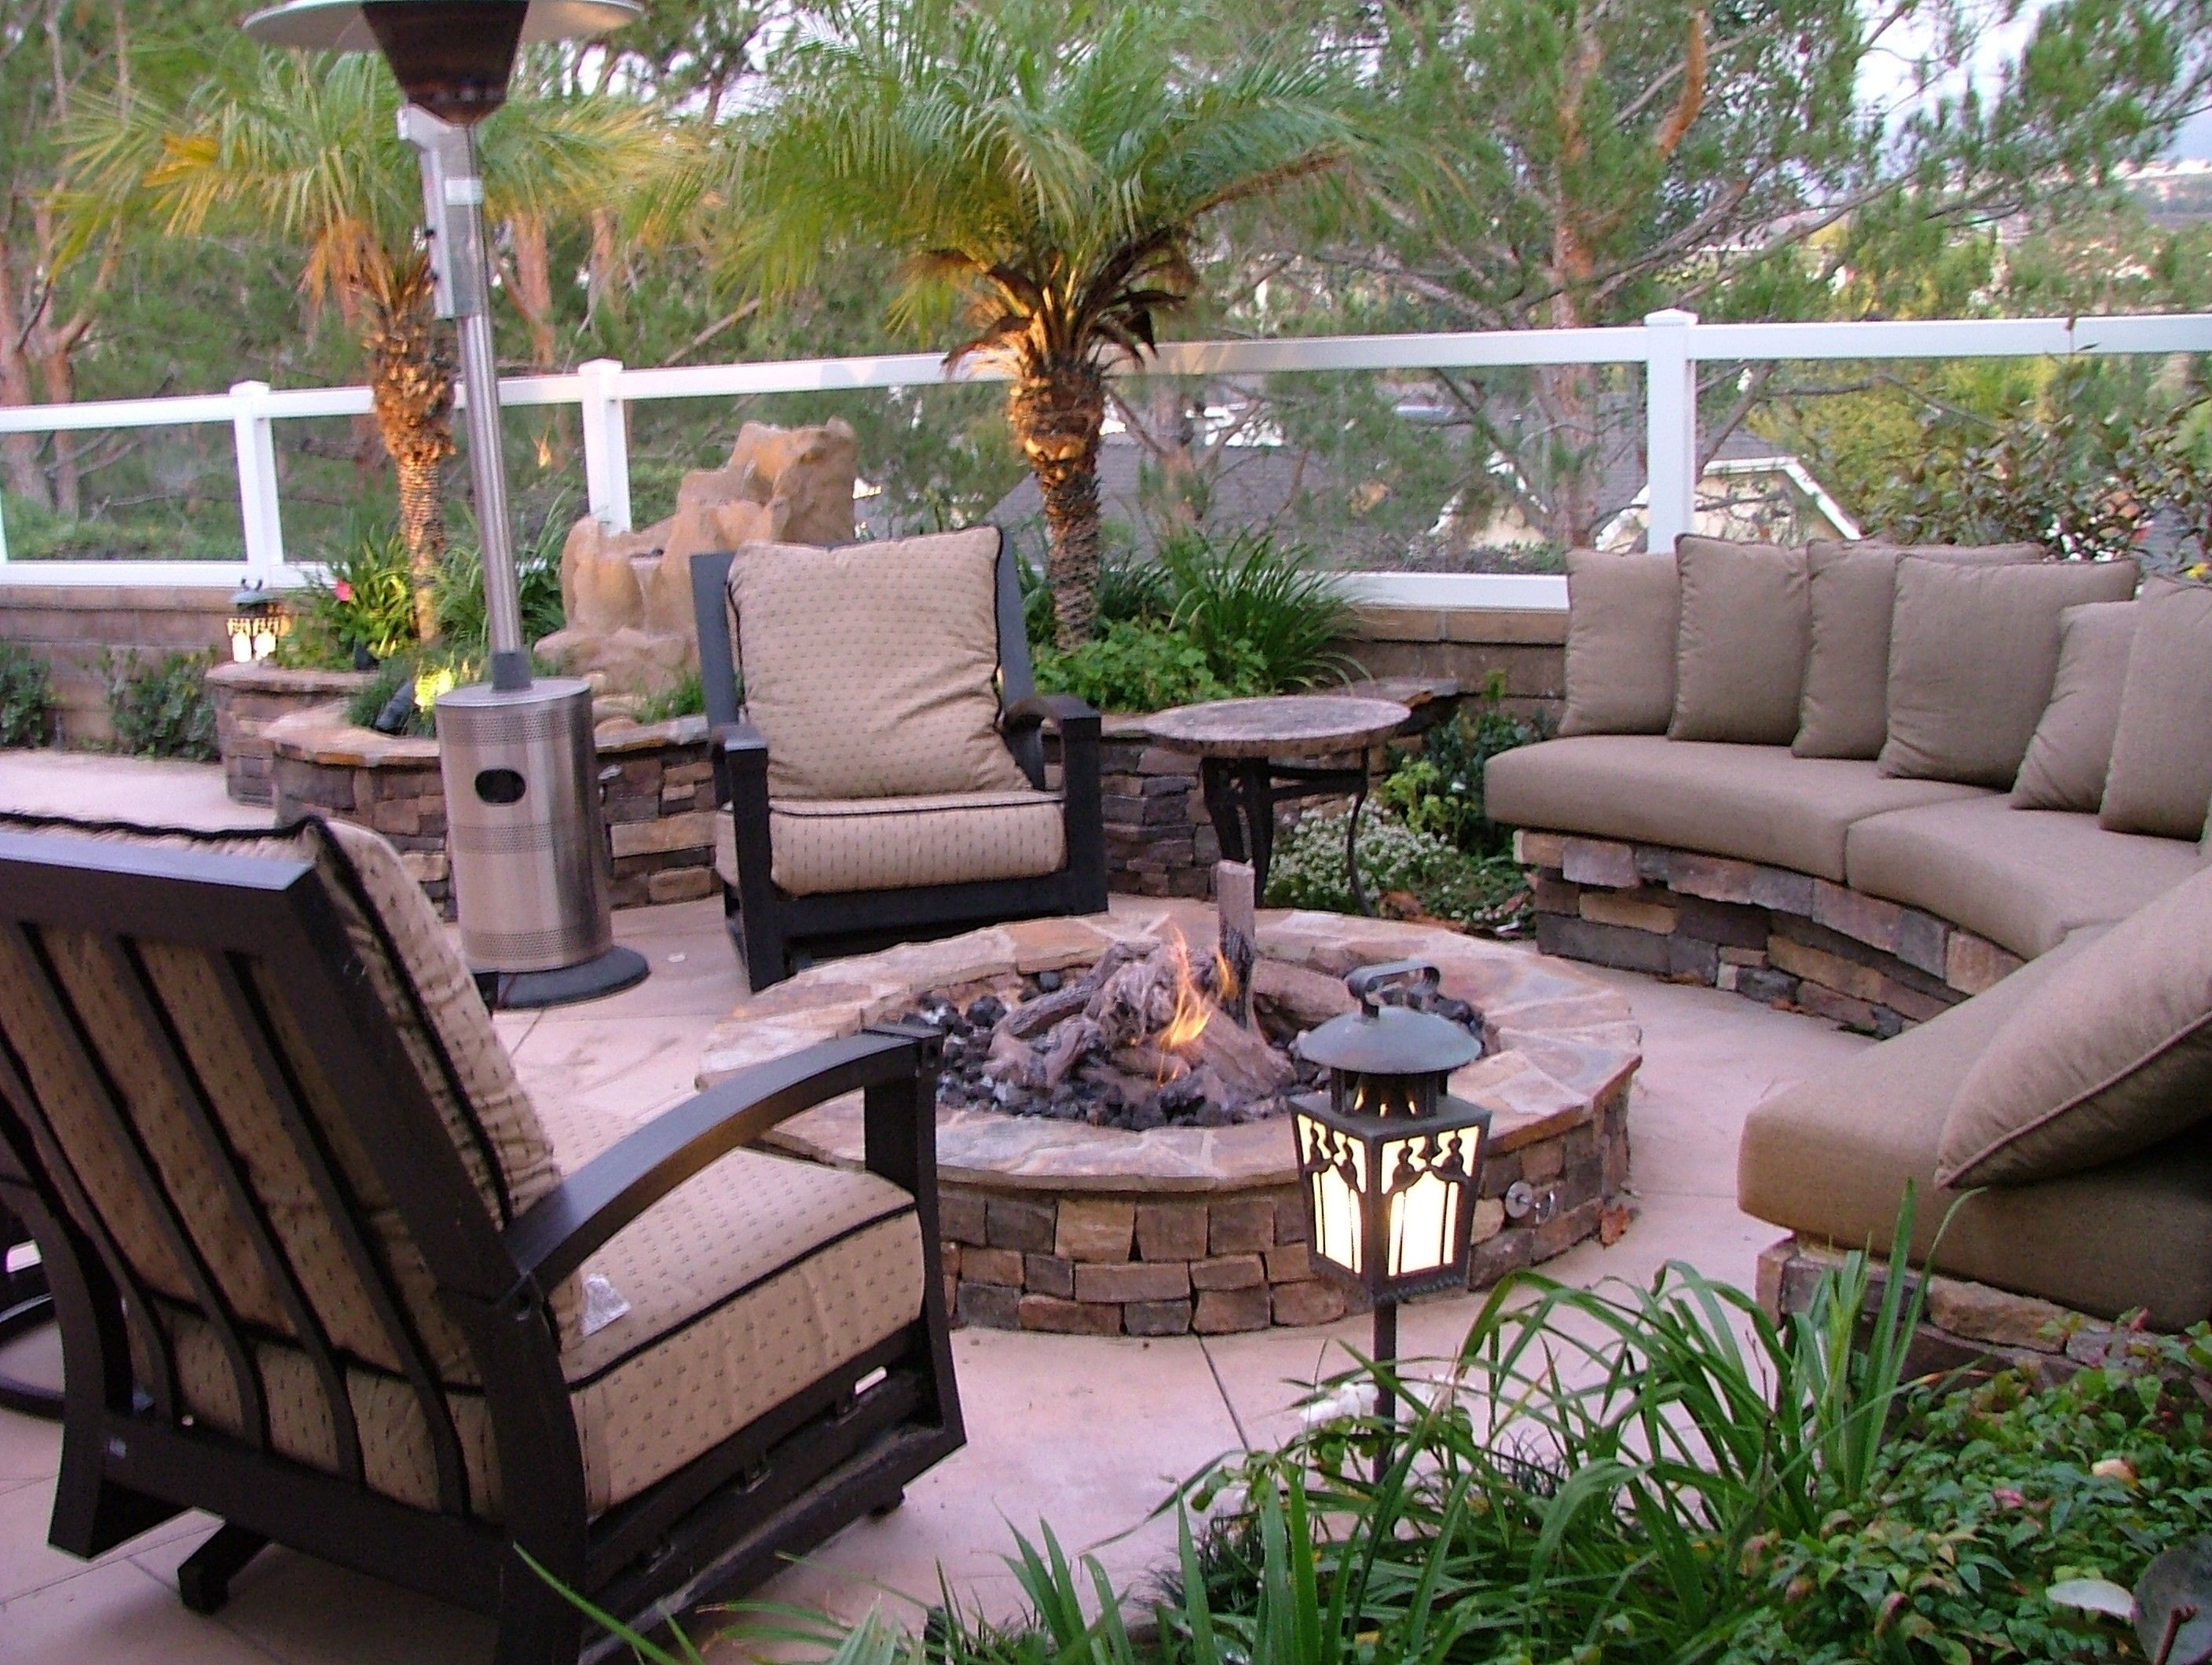 Exterior Home Outdoor Fire Pit Design Ideas Home Fire Pit Diy